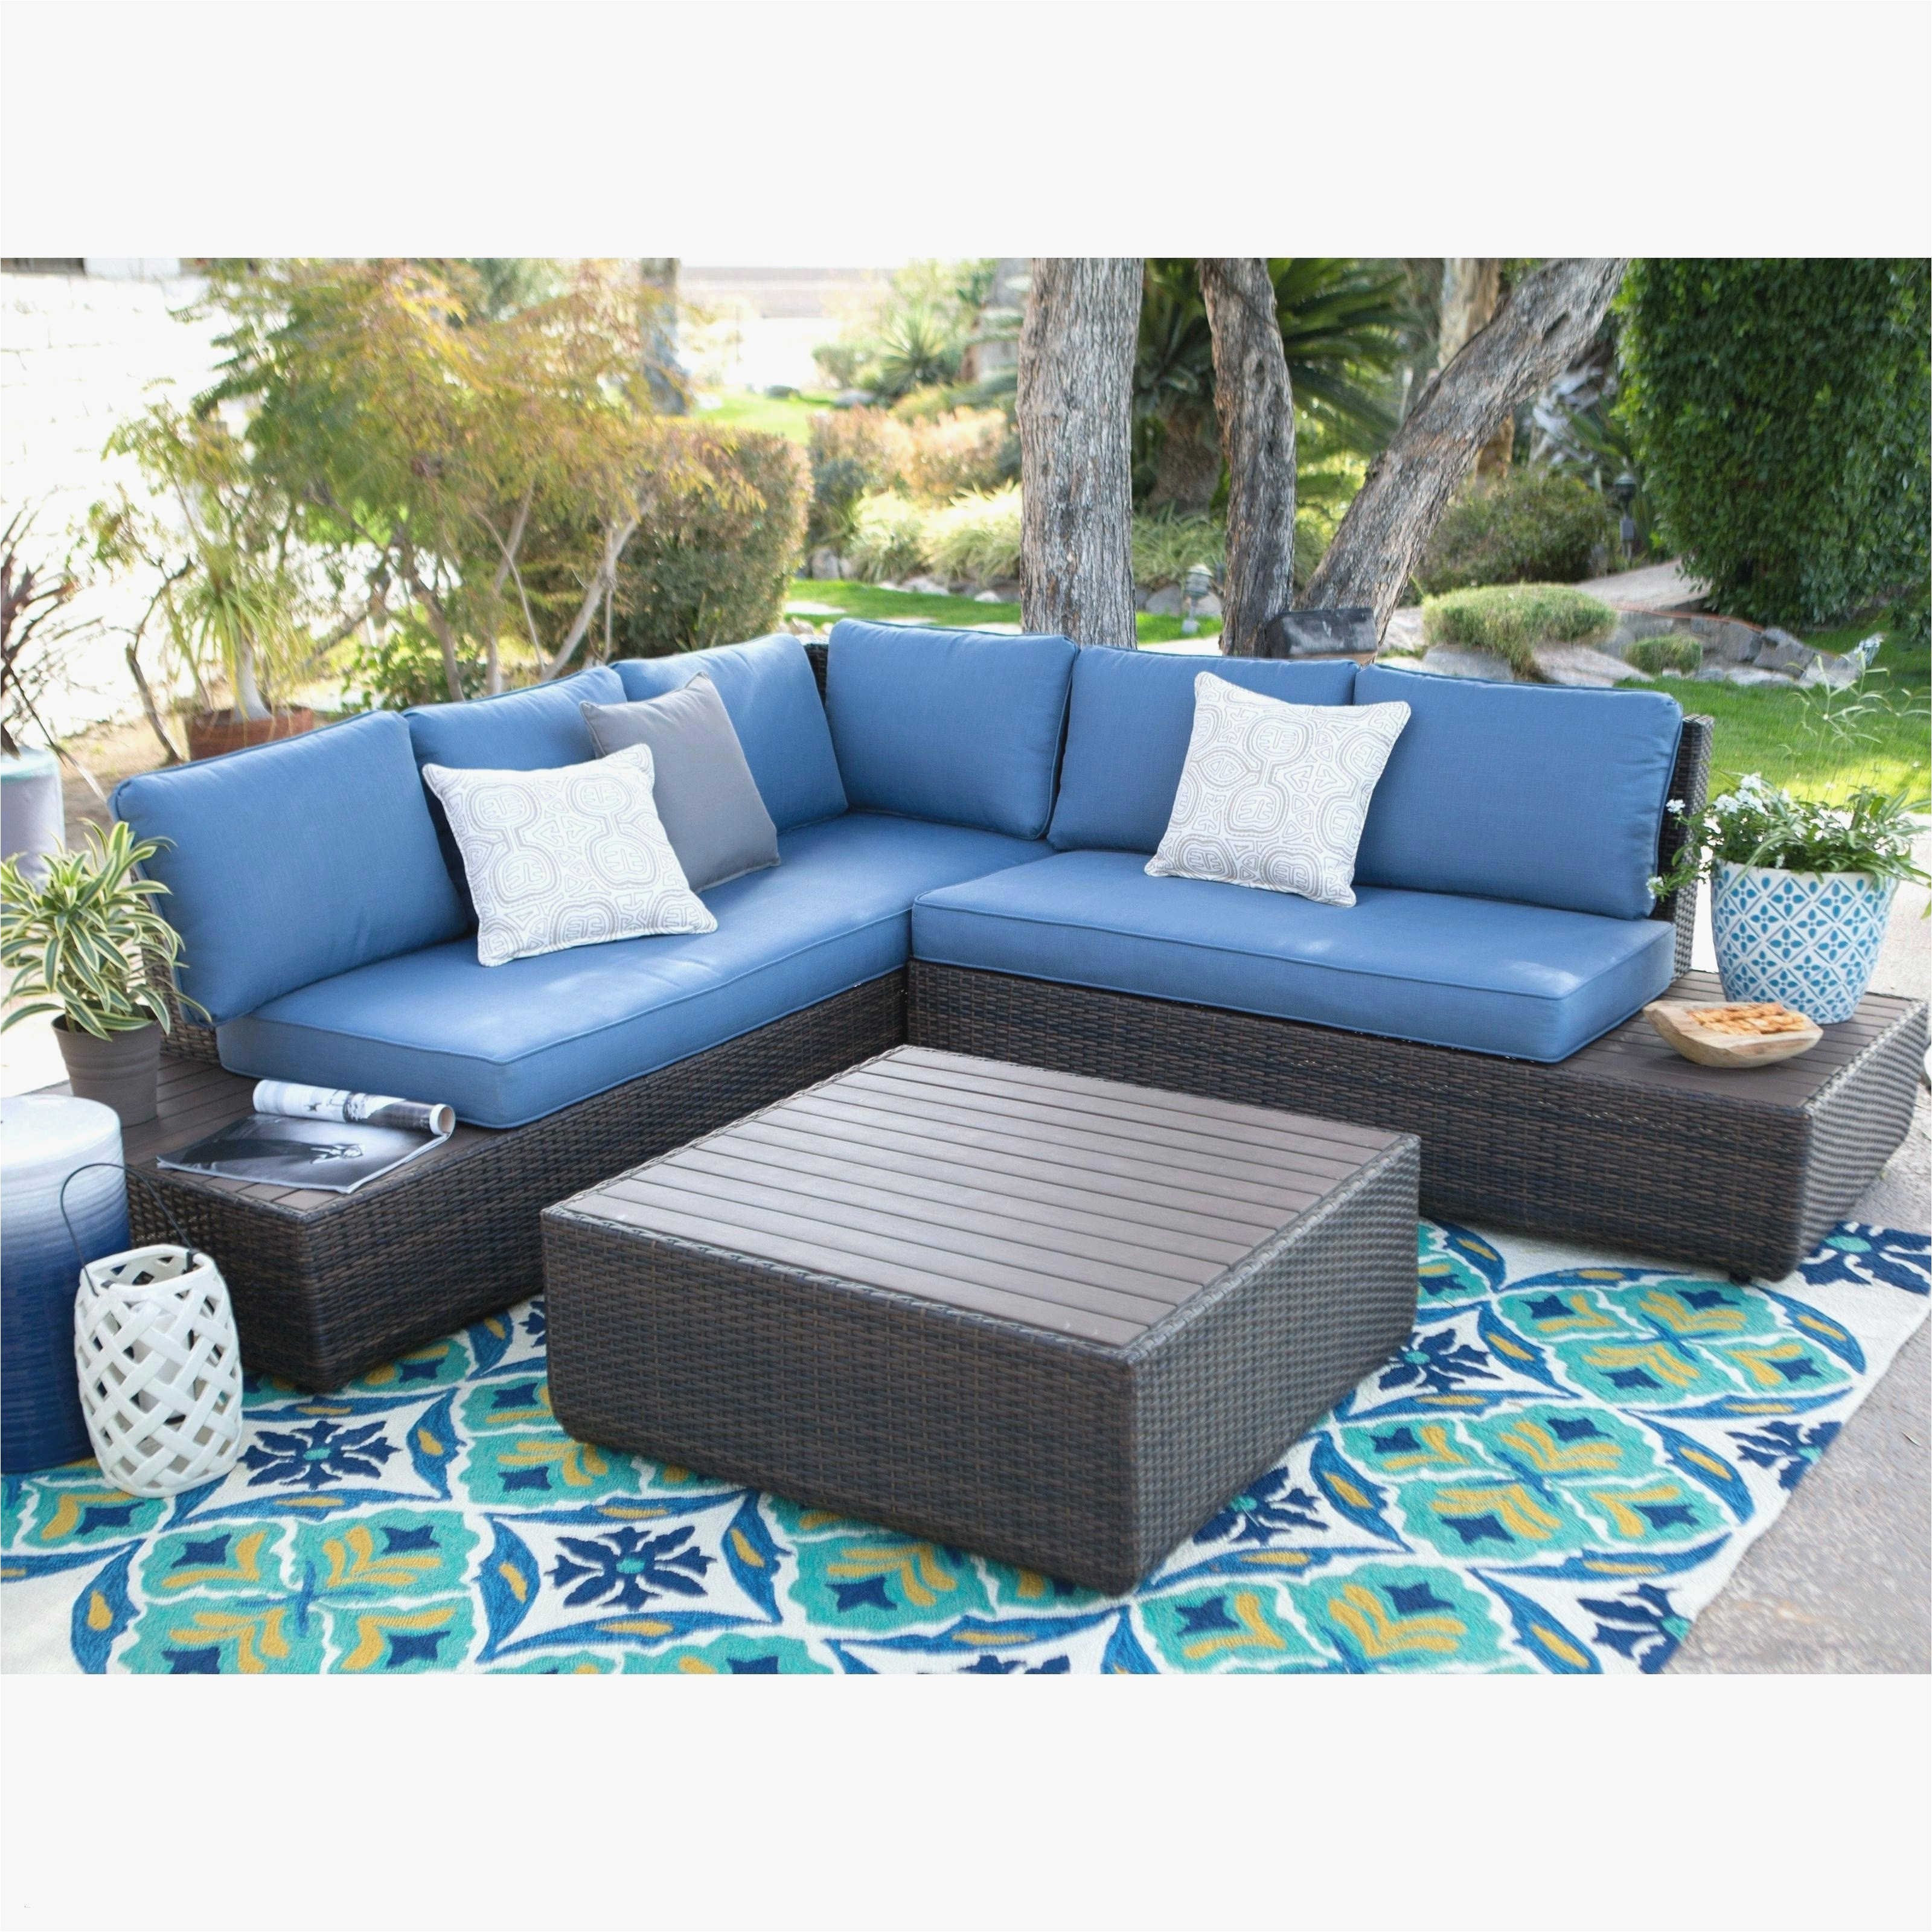 patio covering marvellous patio furniture cushion covers lovely wicker outdoor sofa 0d patio a big